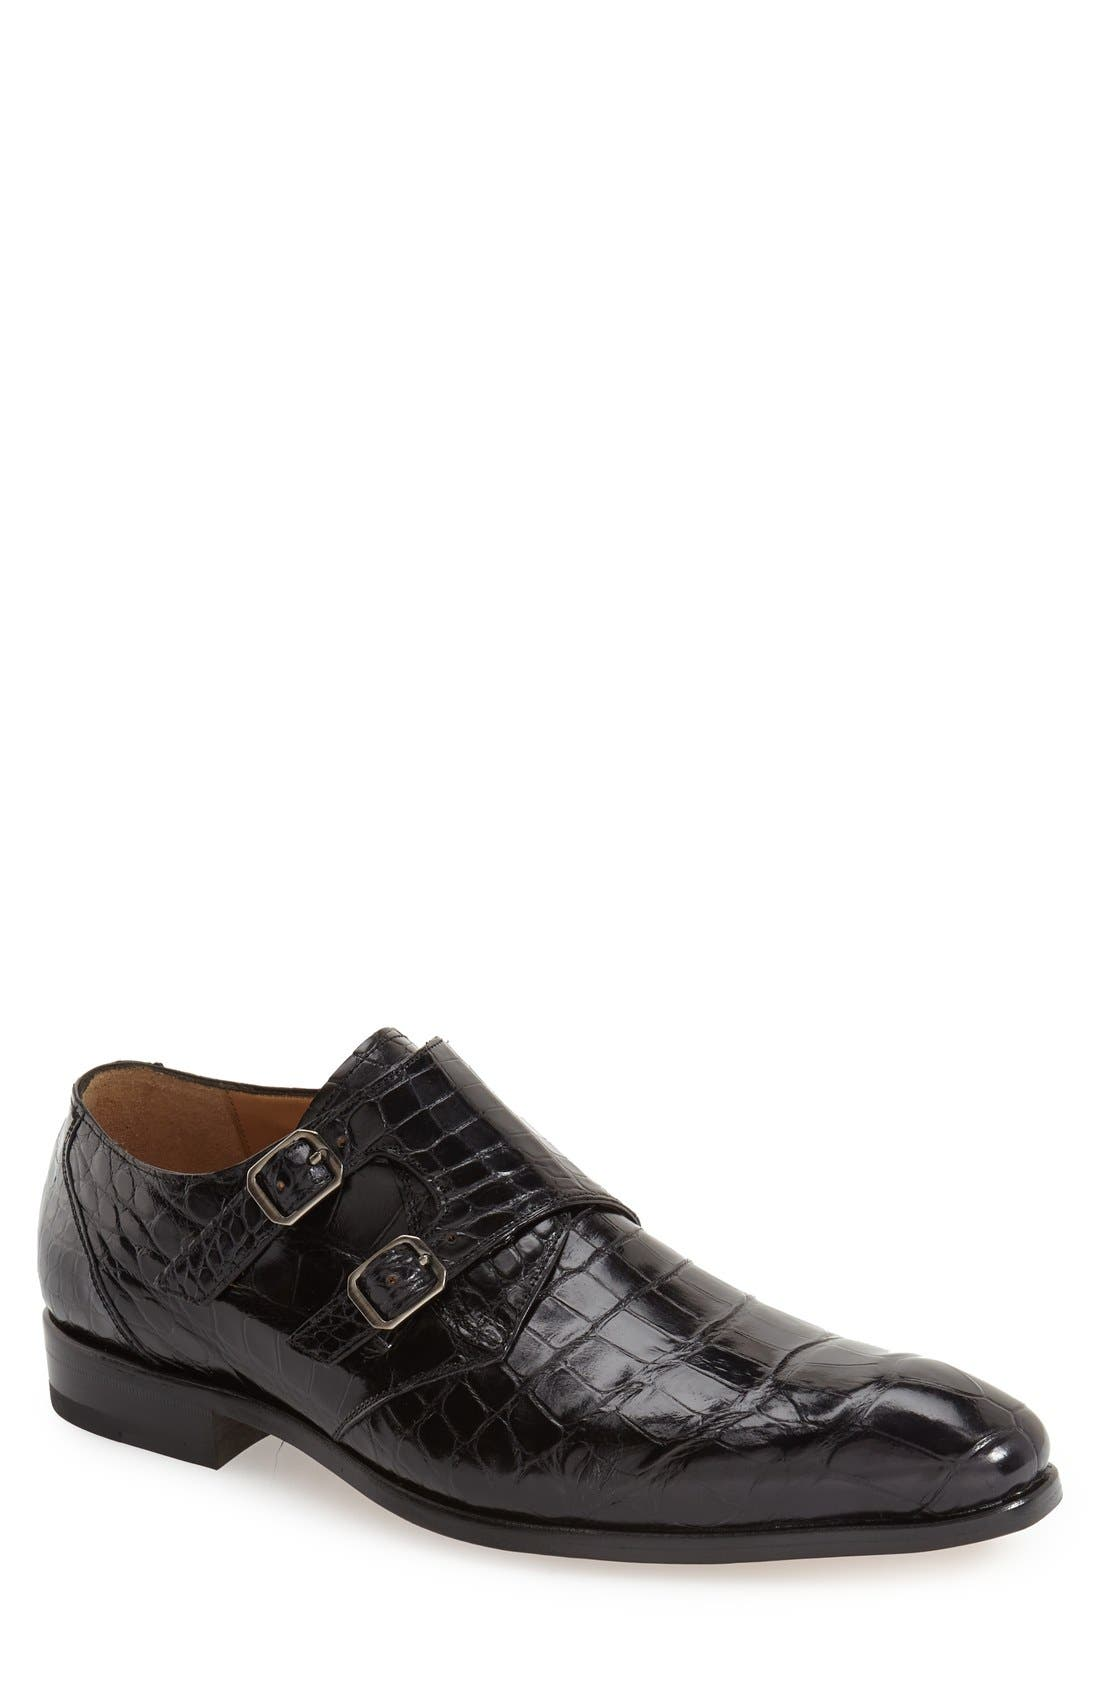 'Agra' Double Monk Strap Shoe,                         Main,                         color,